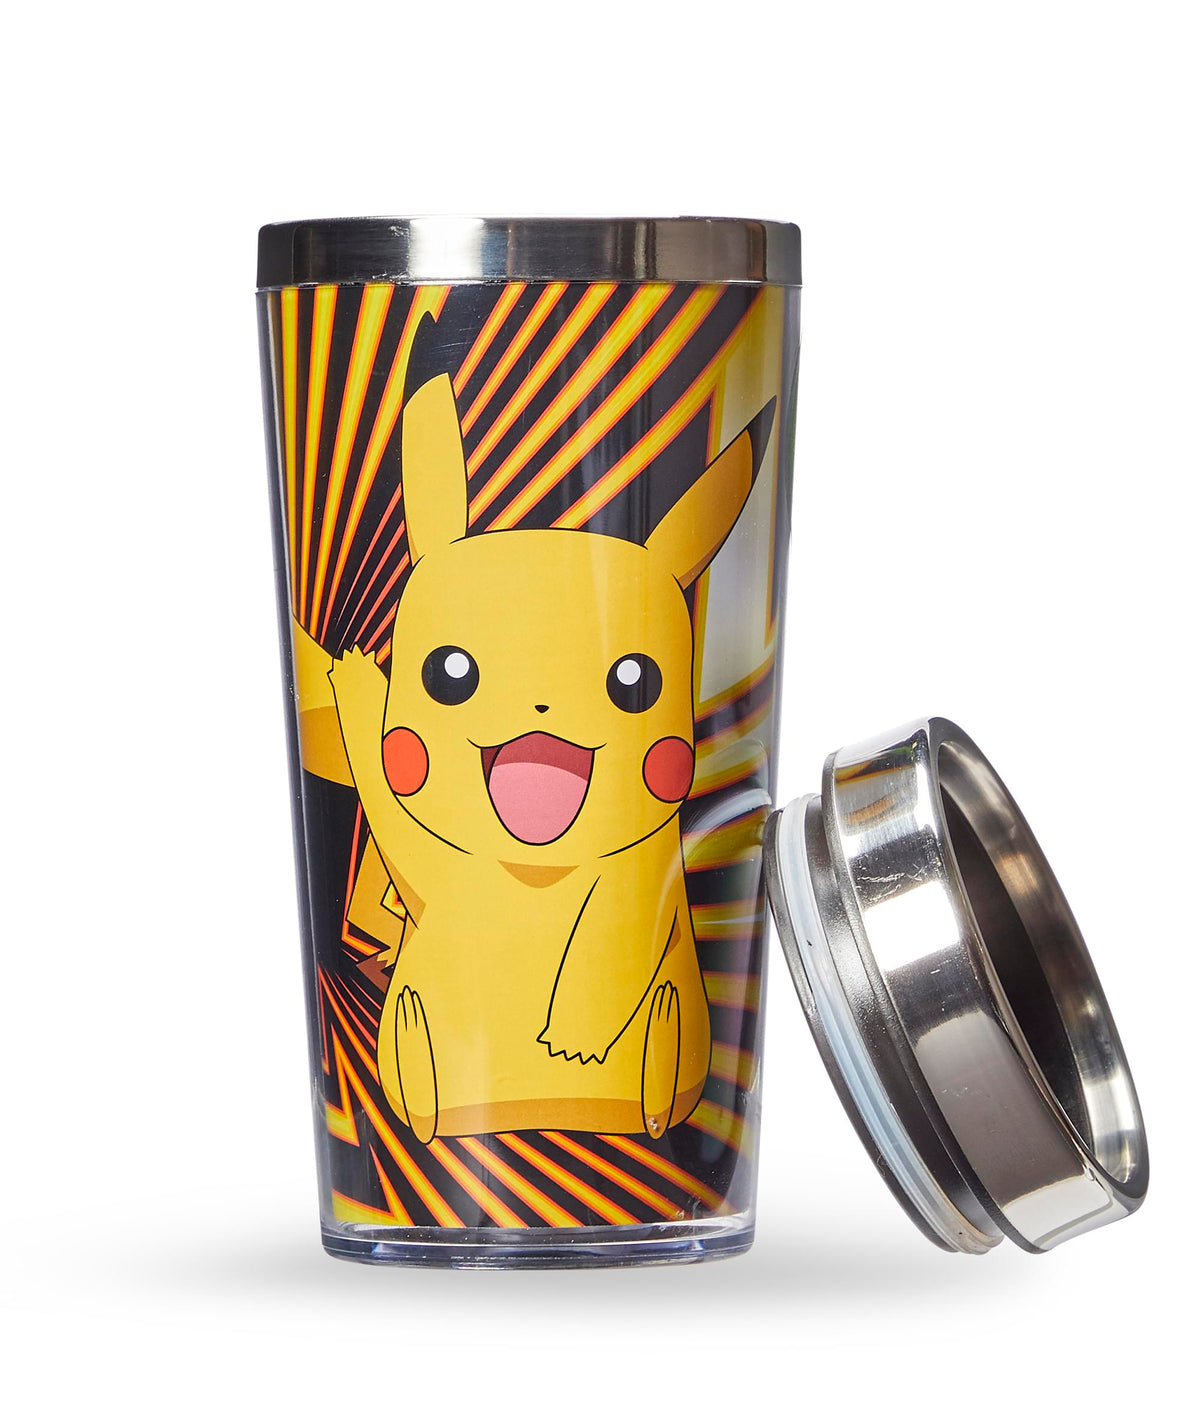 Pokemon Pikachu Travel Mug - 16oz BPA-Free Car Tumbler with Spill-Proof Lid